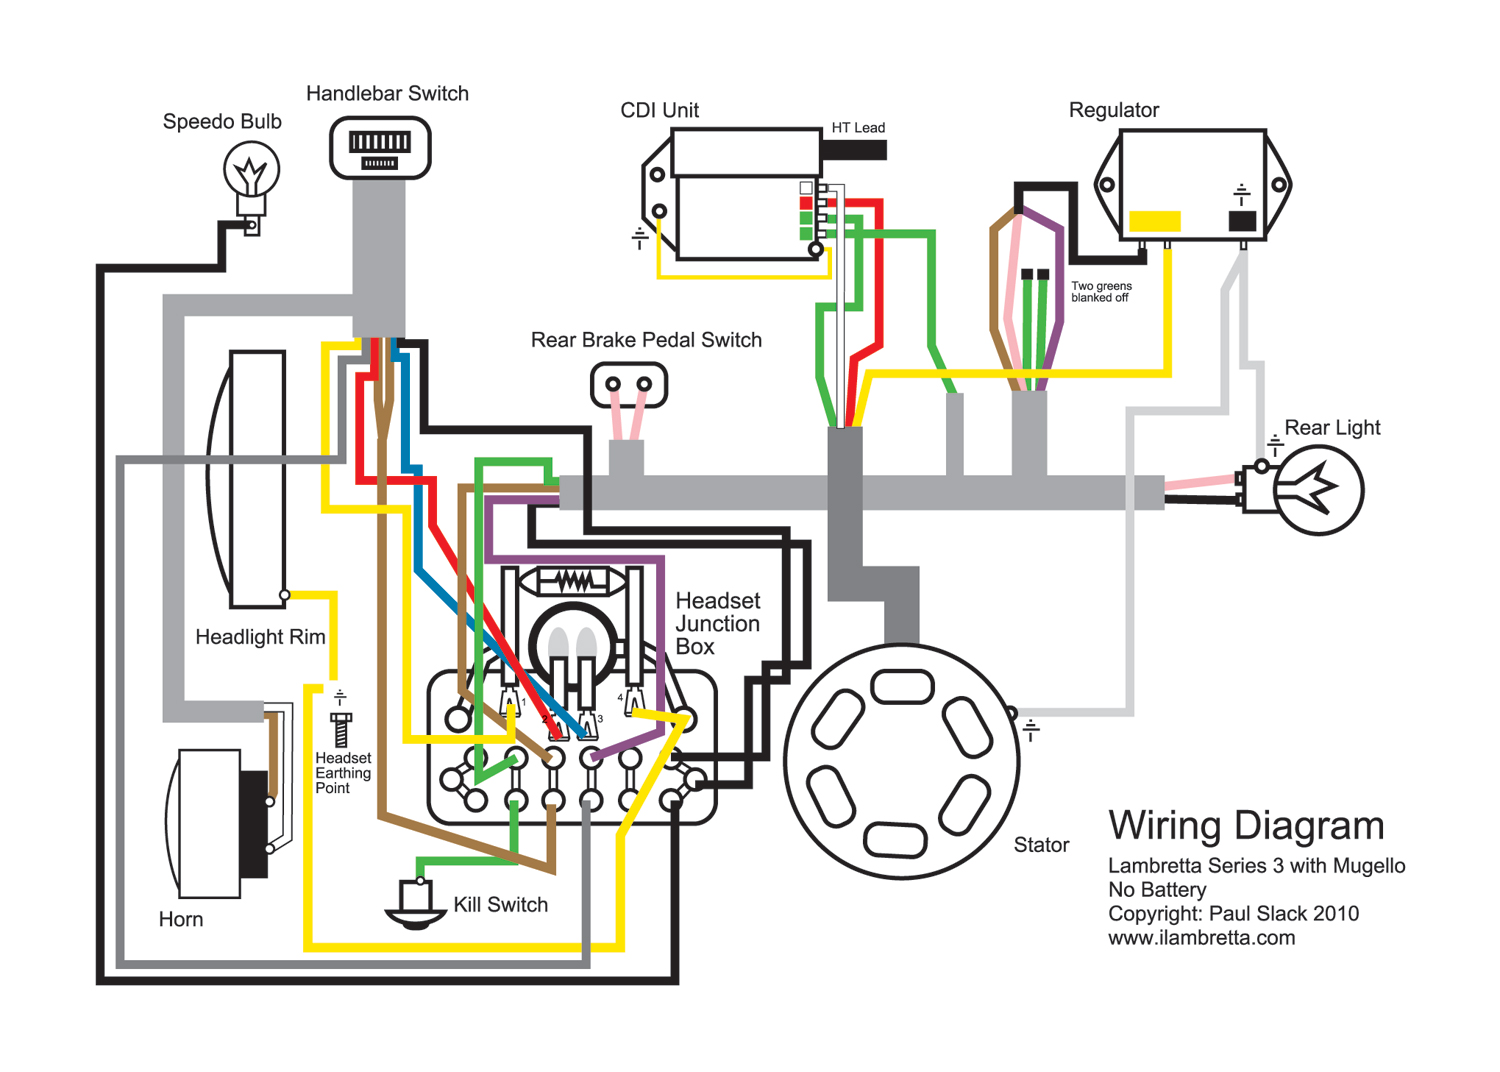 Kazuma 150 Atv Wiring Diagram Will Be A Thing Mini Chopper Schematics Chinese 110 Get Free Image About Need Picture Of